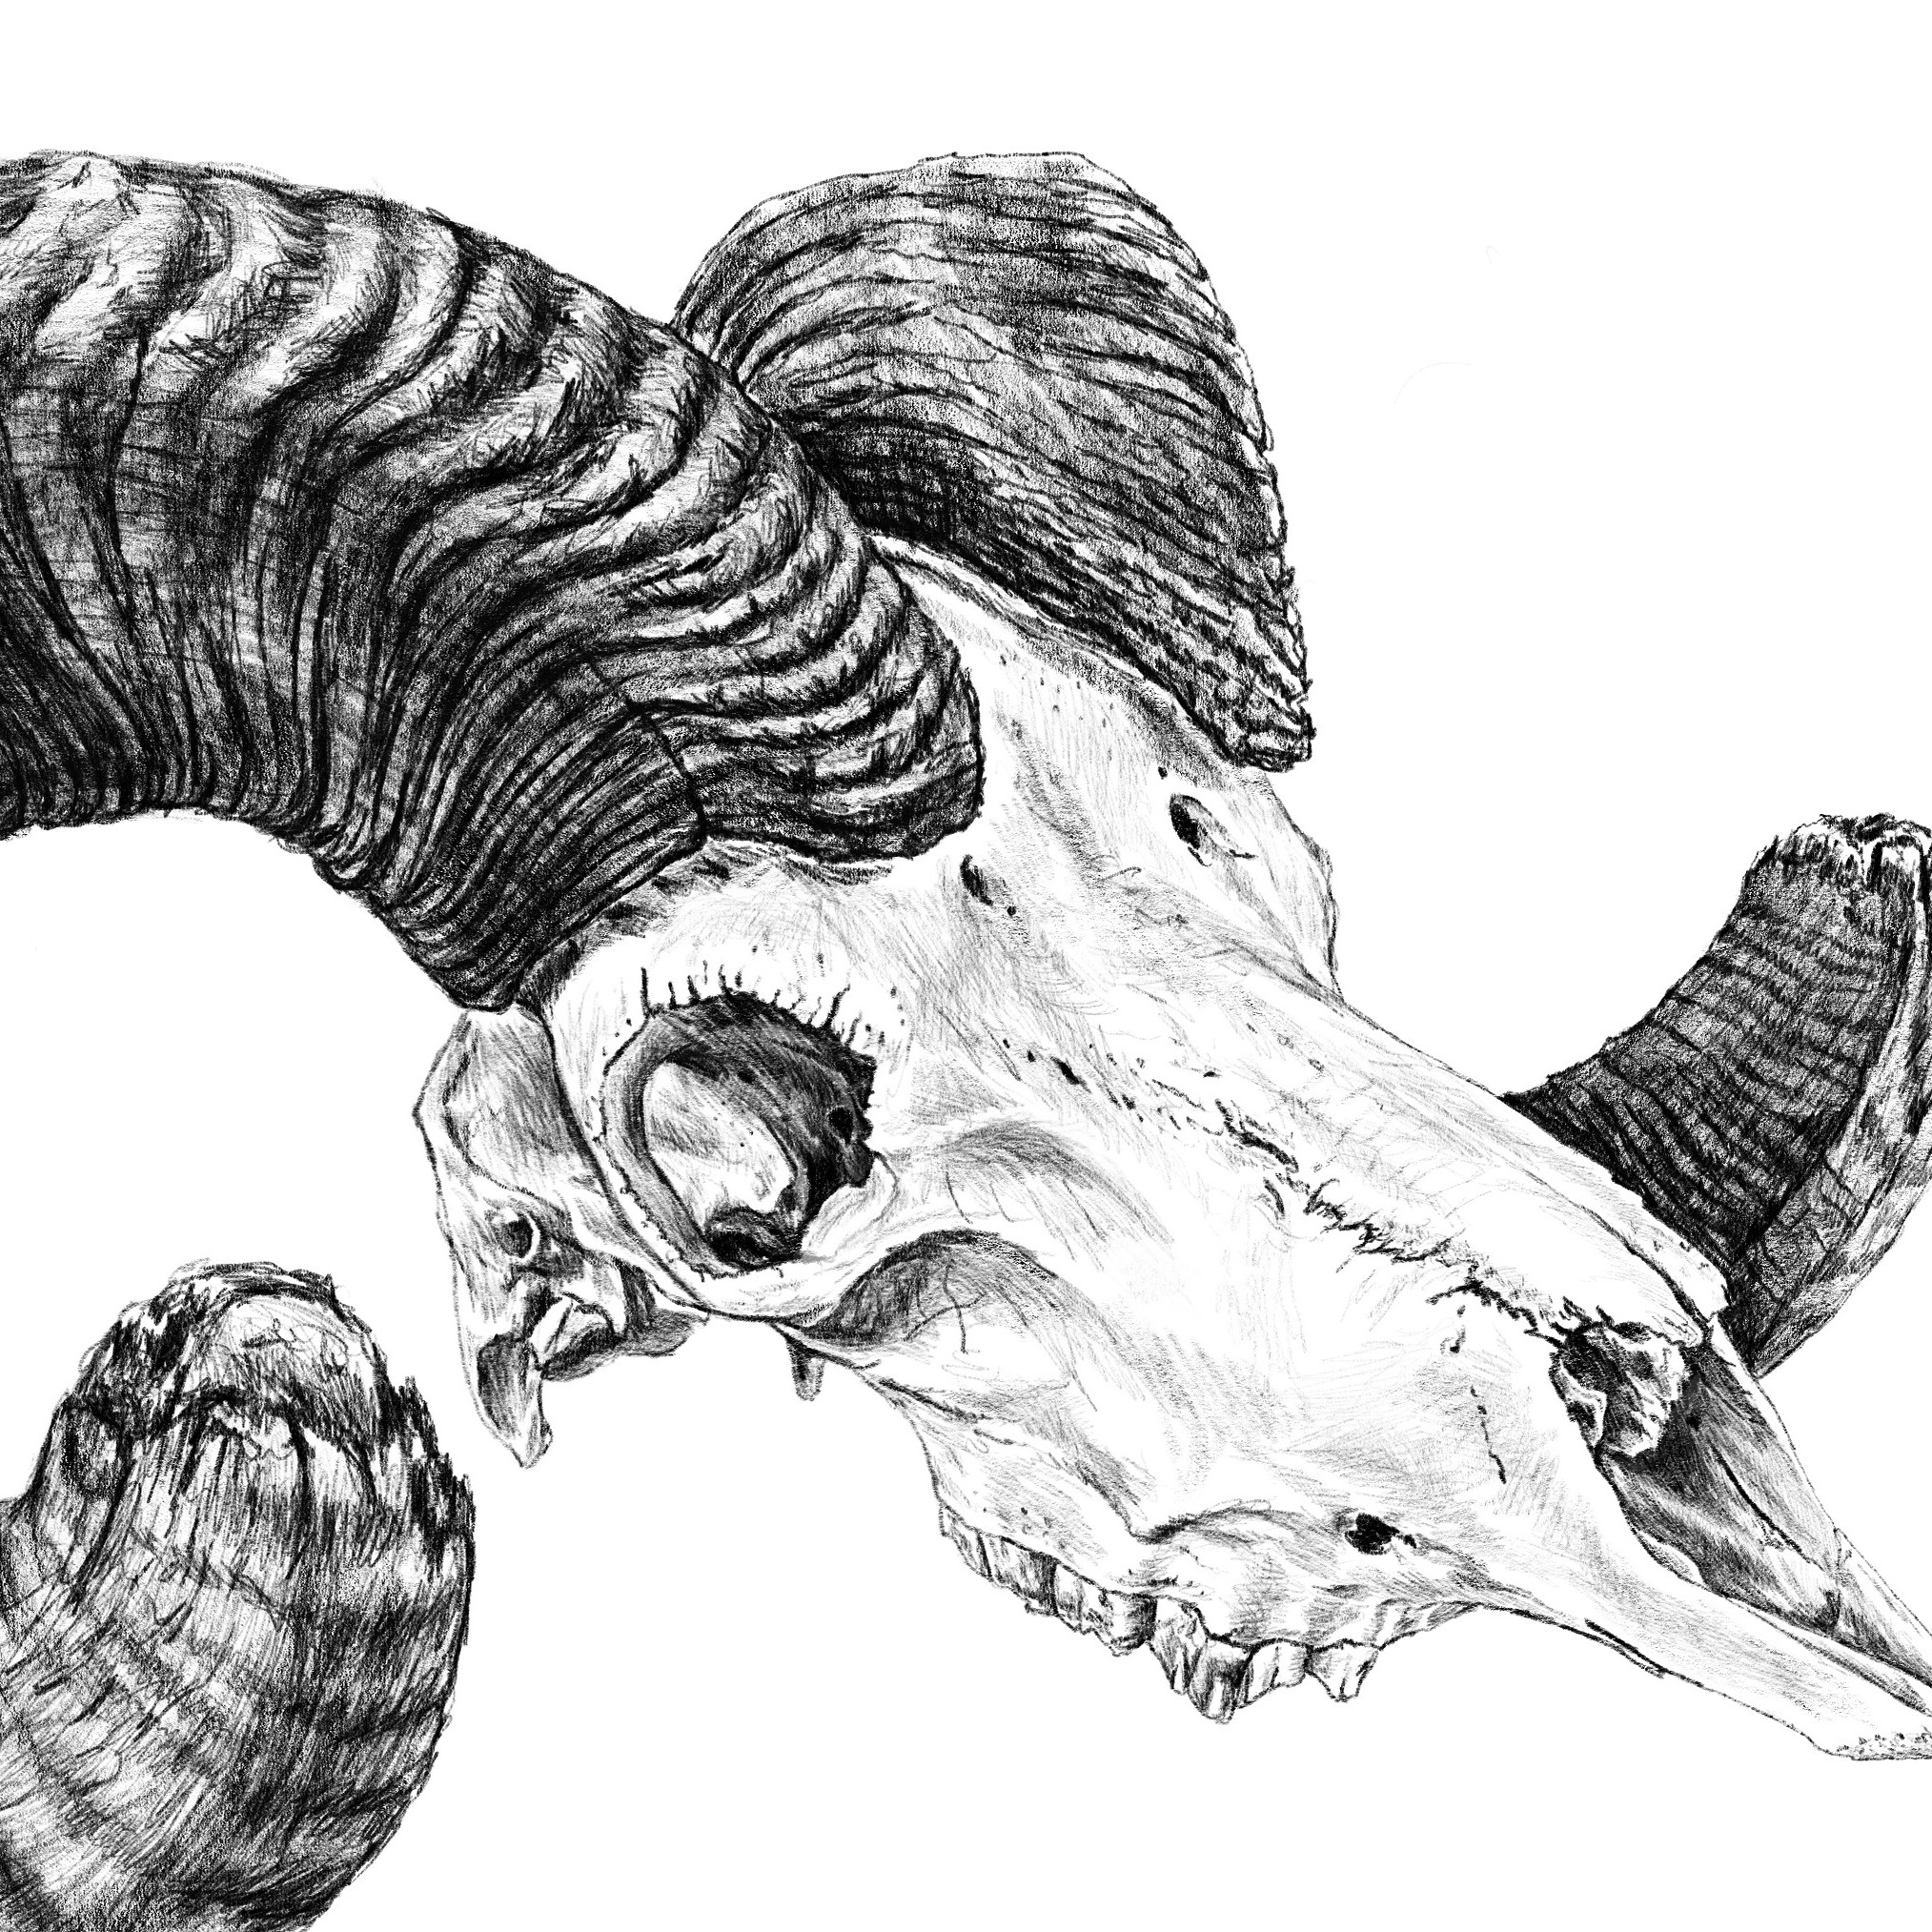 BIG HORN SHEEP   SOLD - COMMISSION